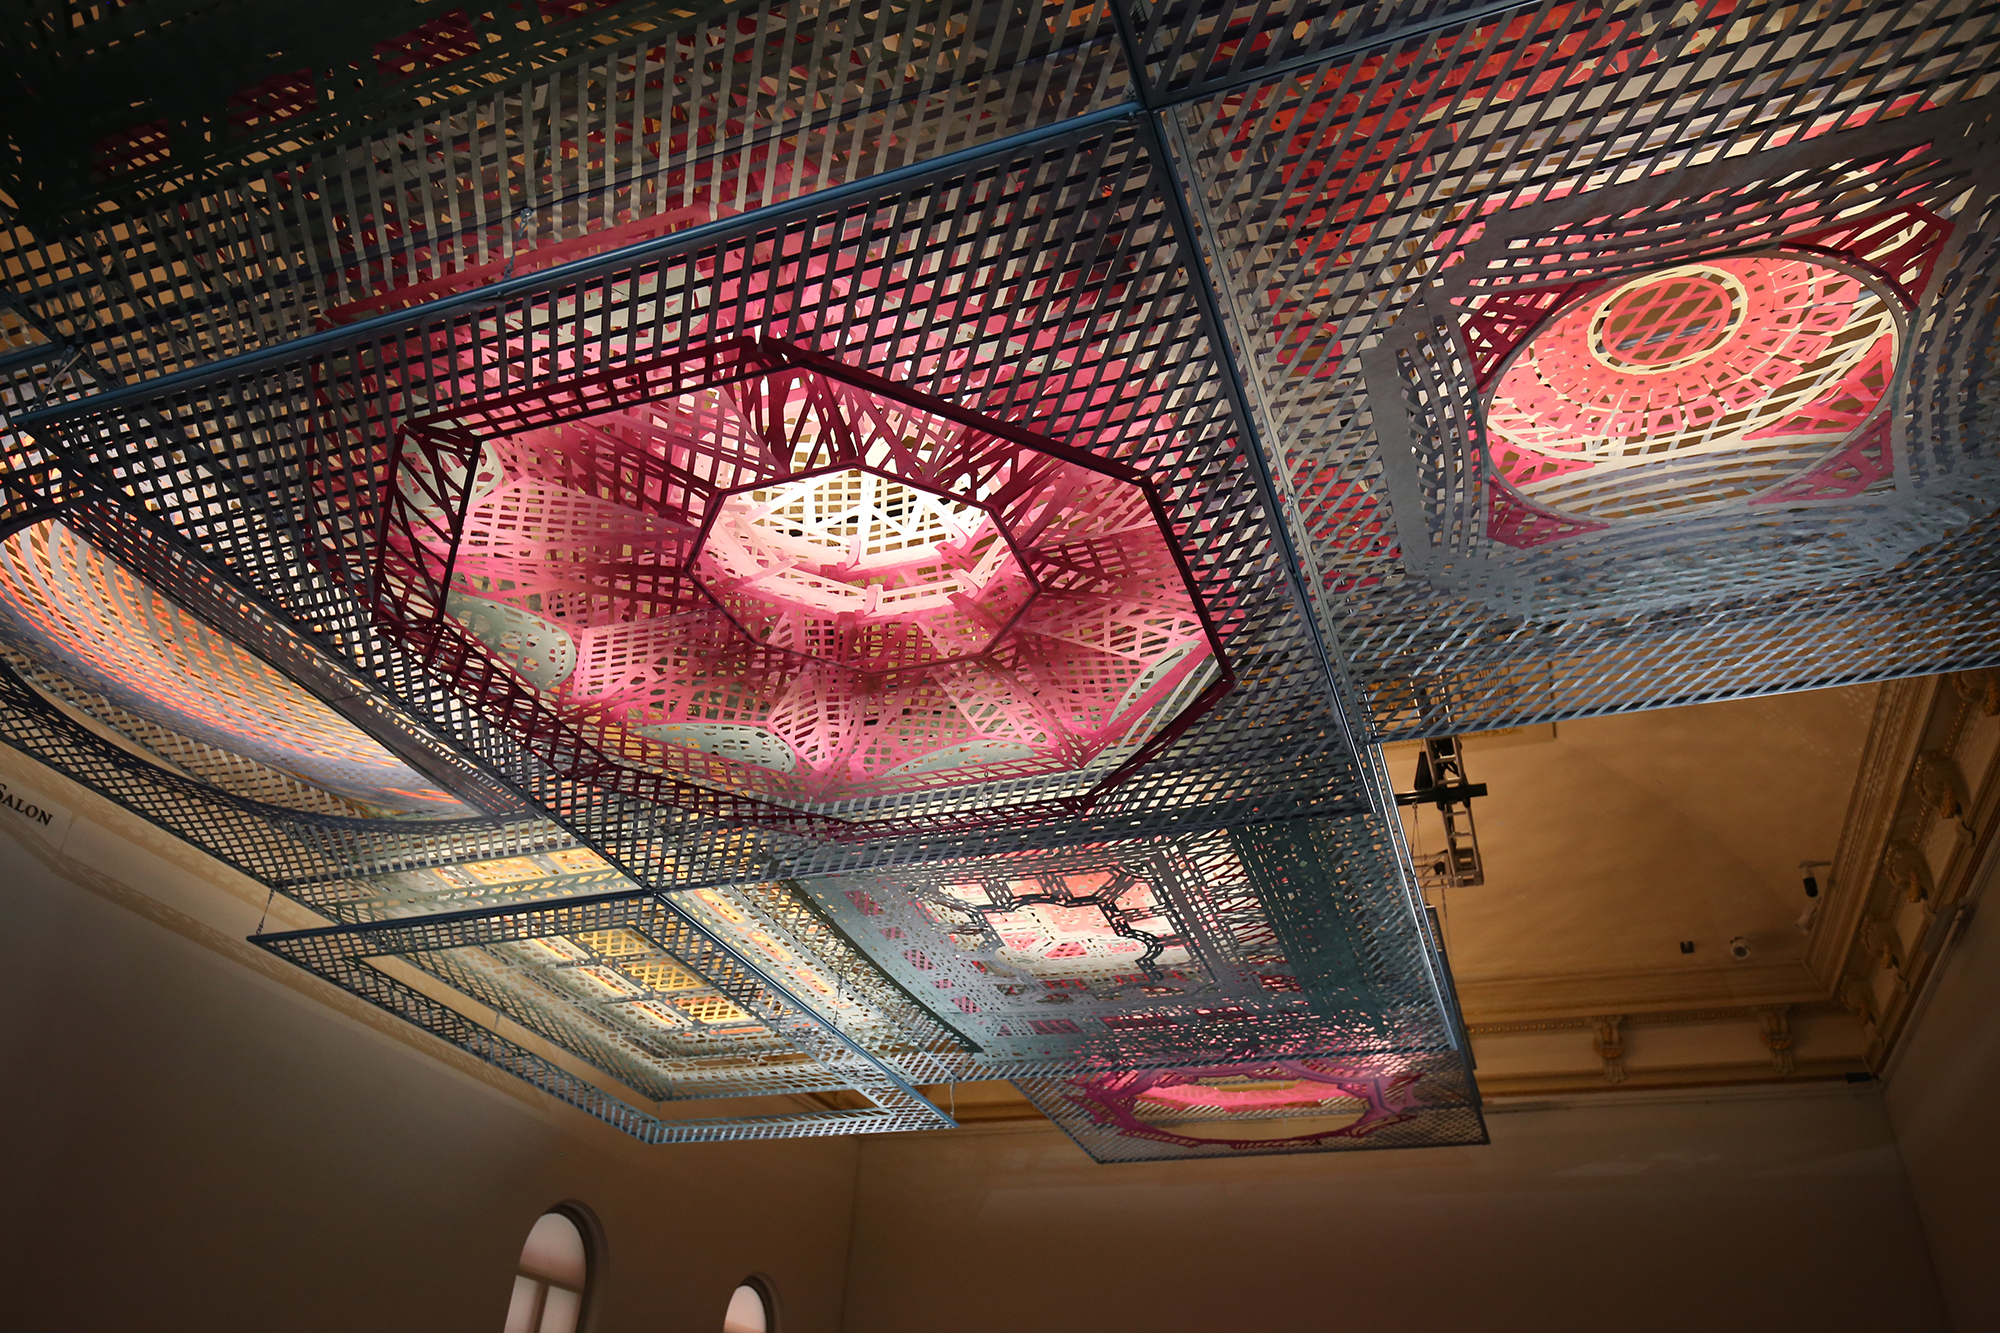 Washington's Renwick Gallery Introduces Ceiling-suspended